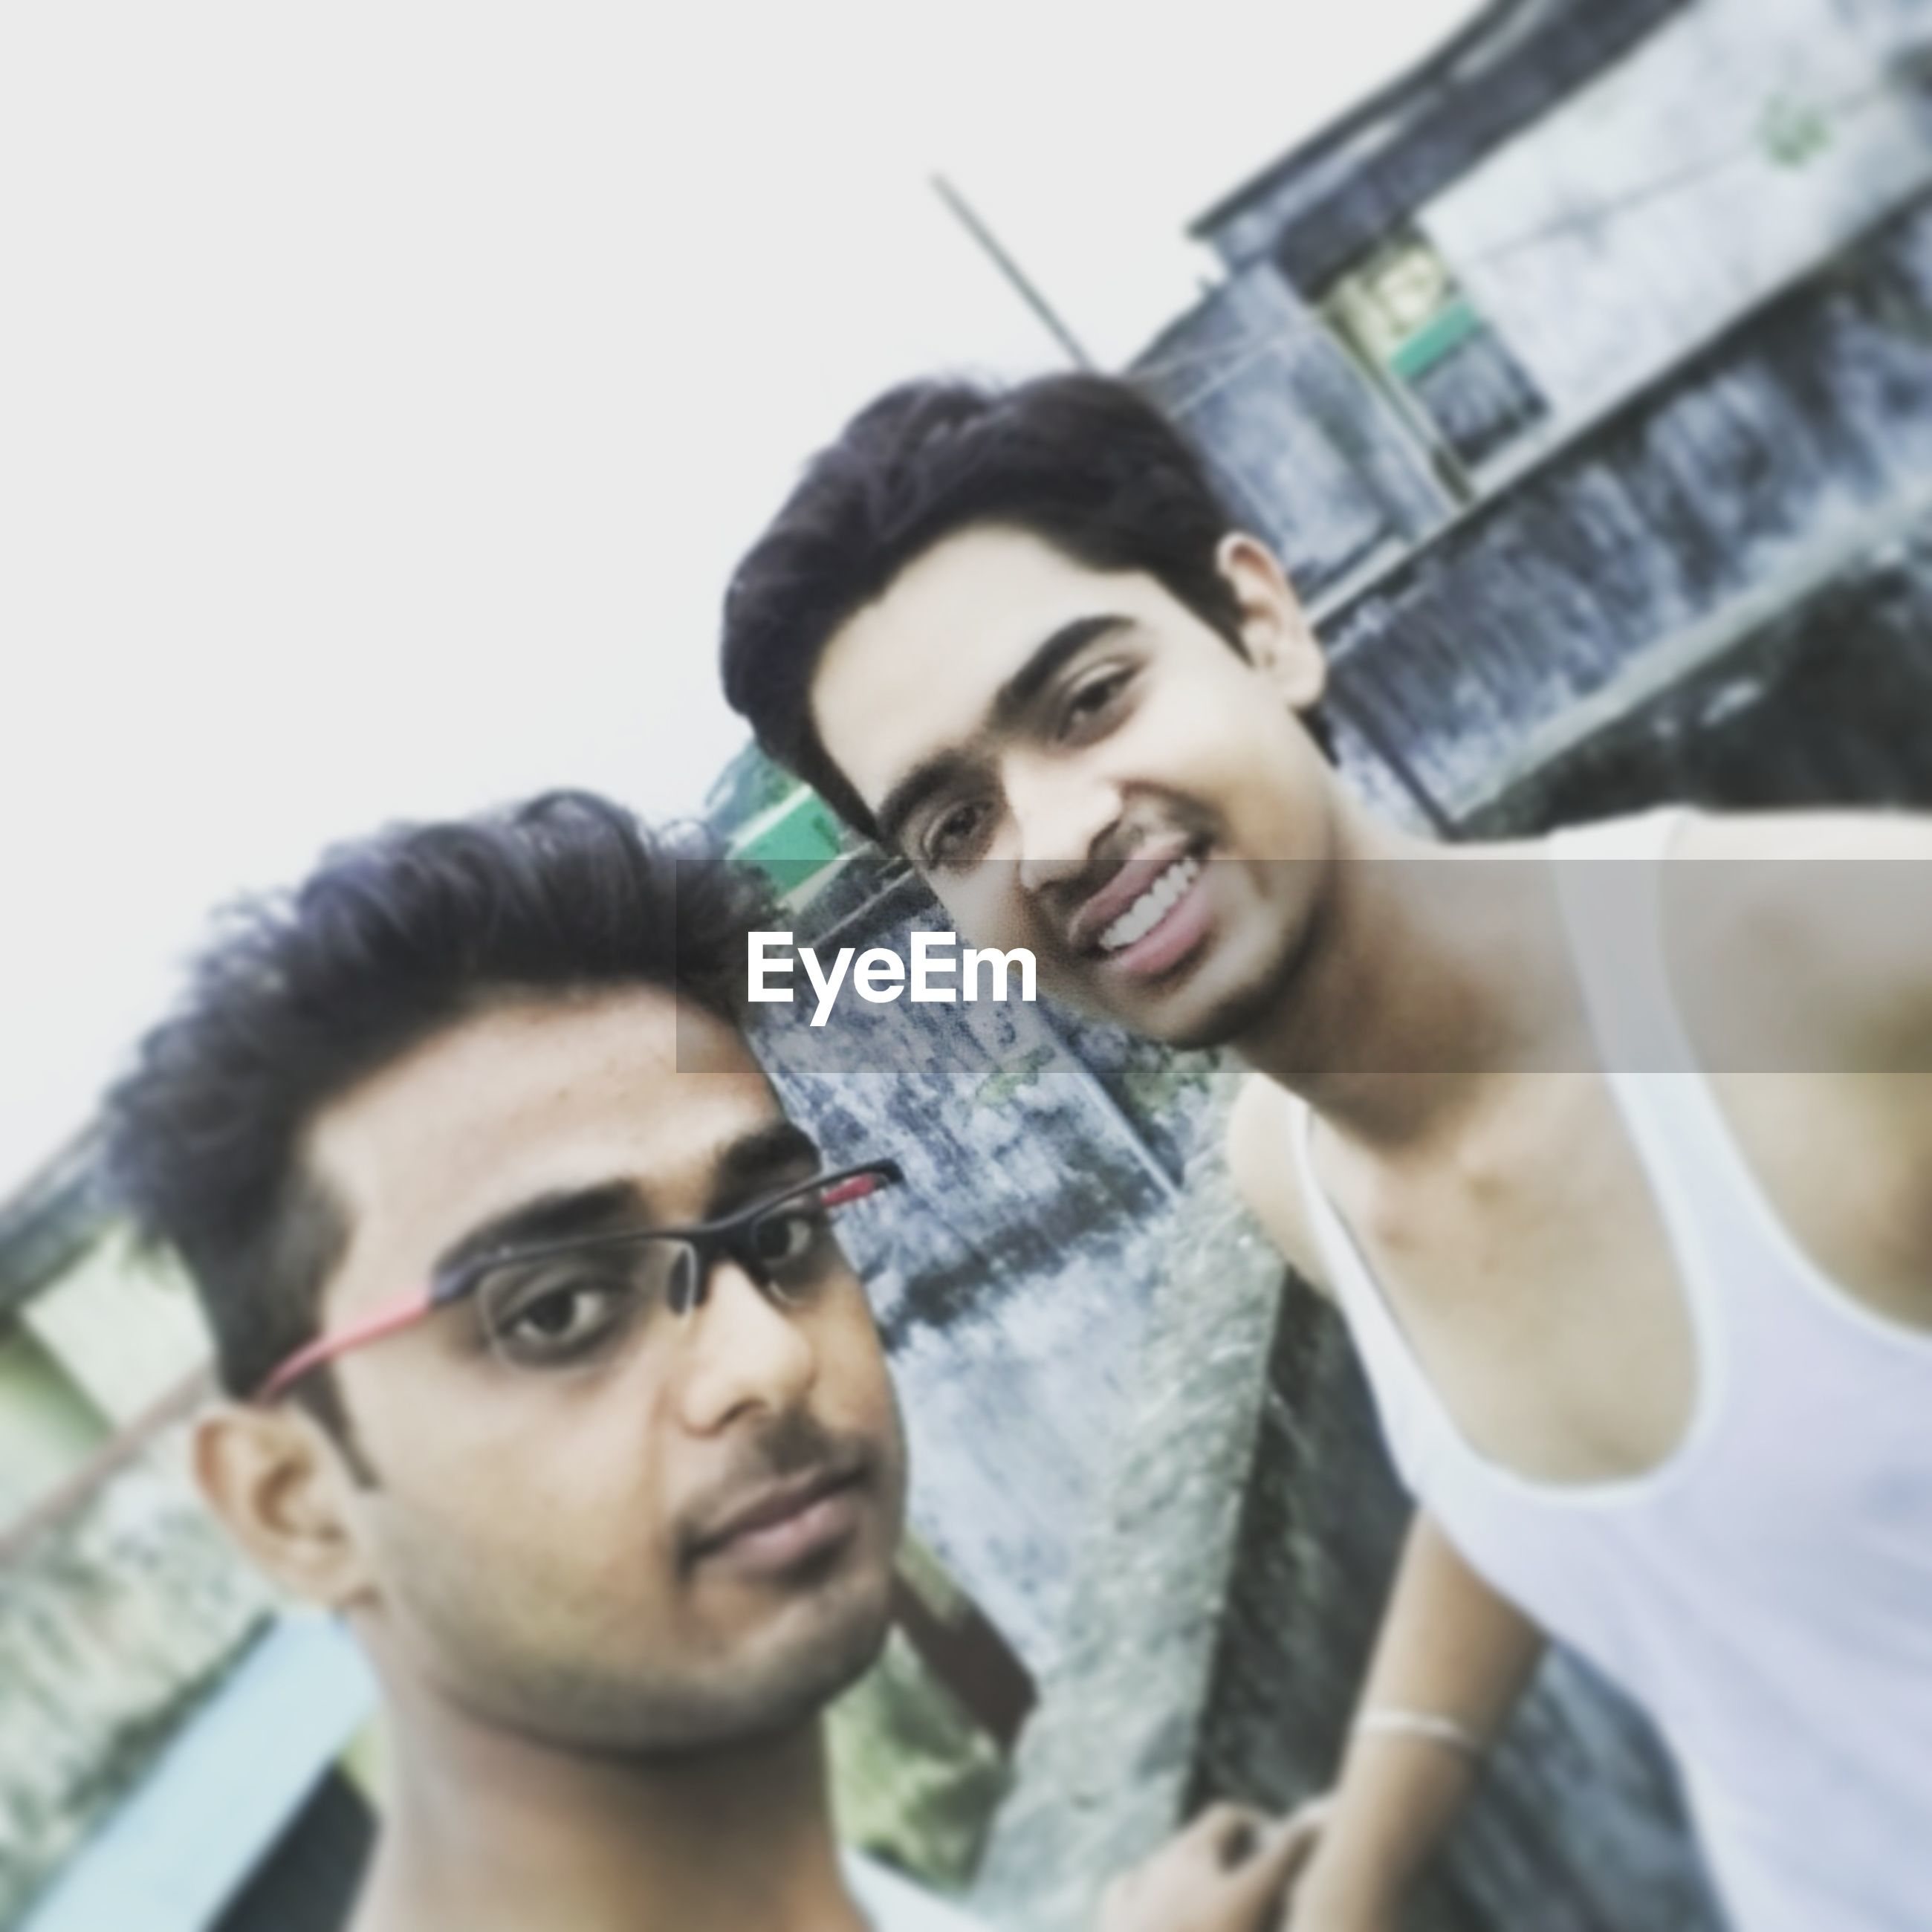 person, young adult, young men, looking at camera, portrait, lifestyles, smiling, leisure activity, front view, happiness, mid adult men, casual clothing, headshot, mid adult, sunglasses, photography themes